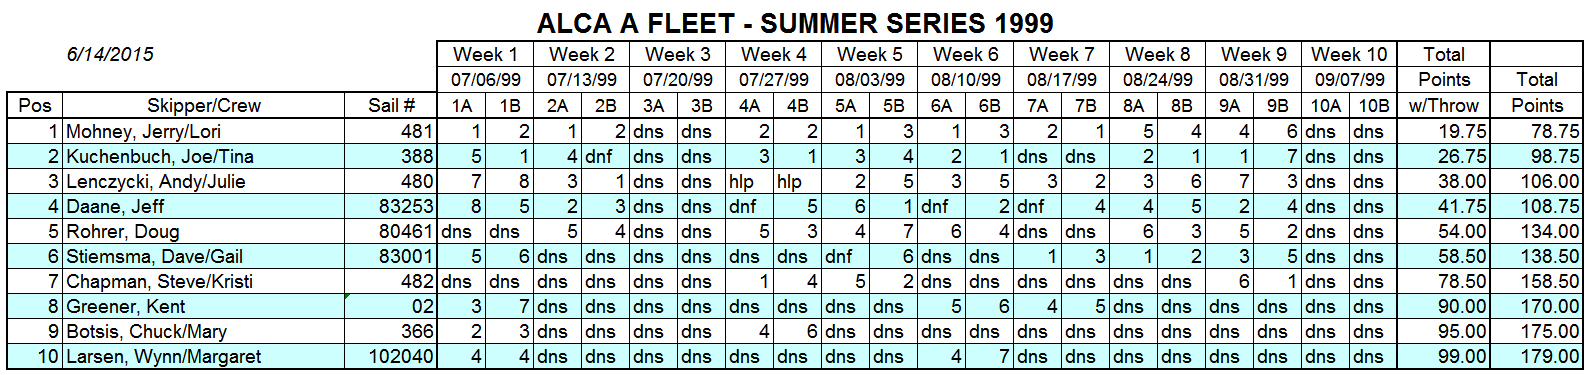 1999 Summer A Fleet Results